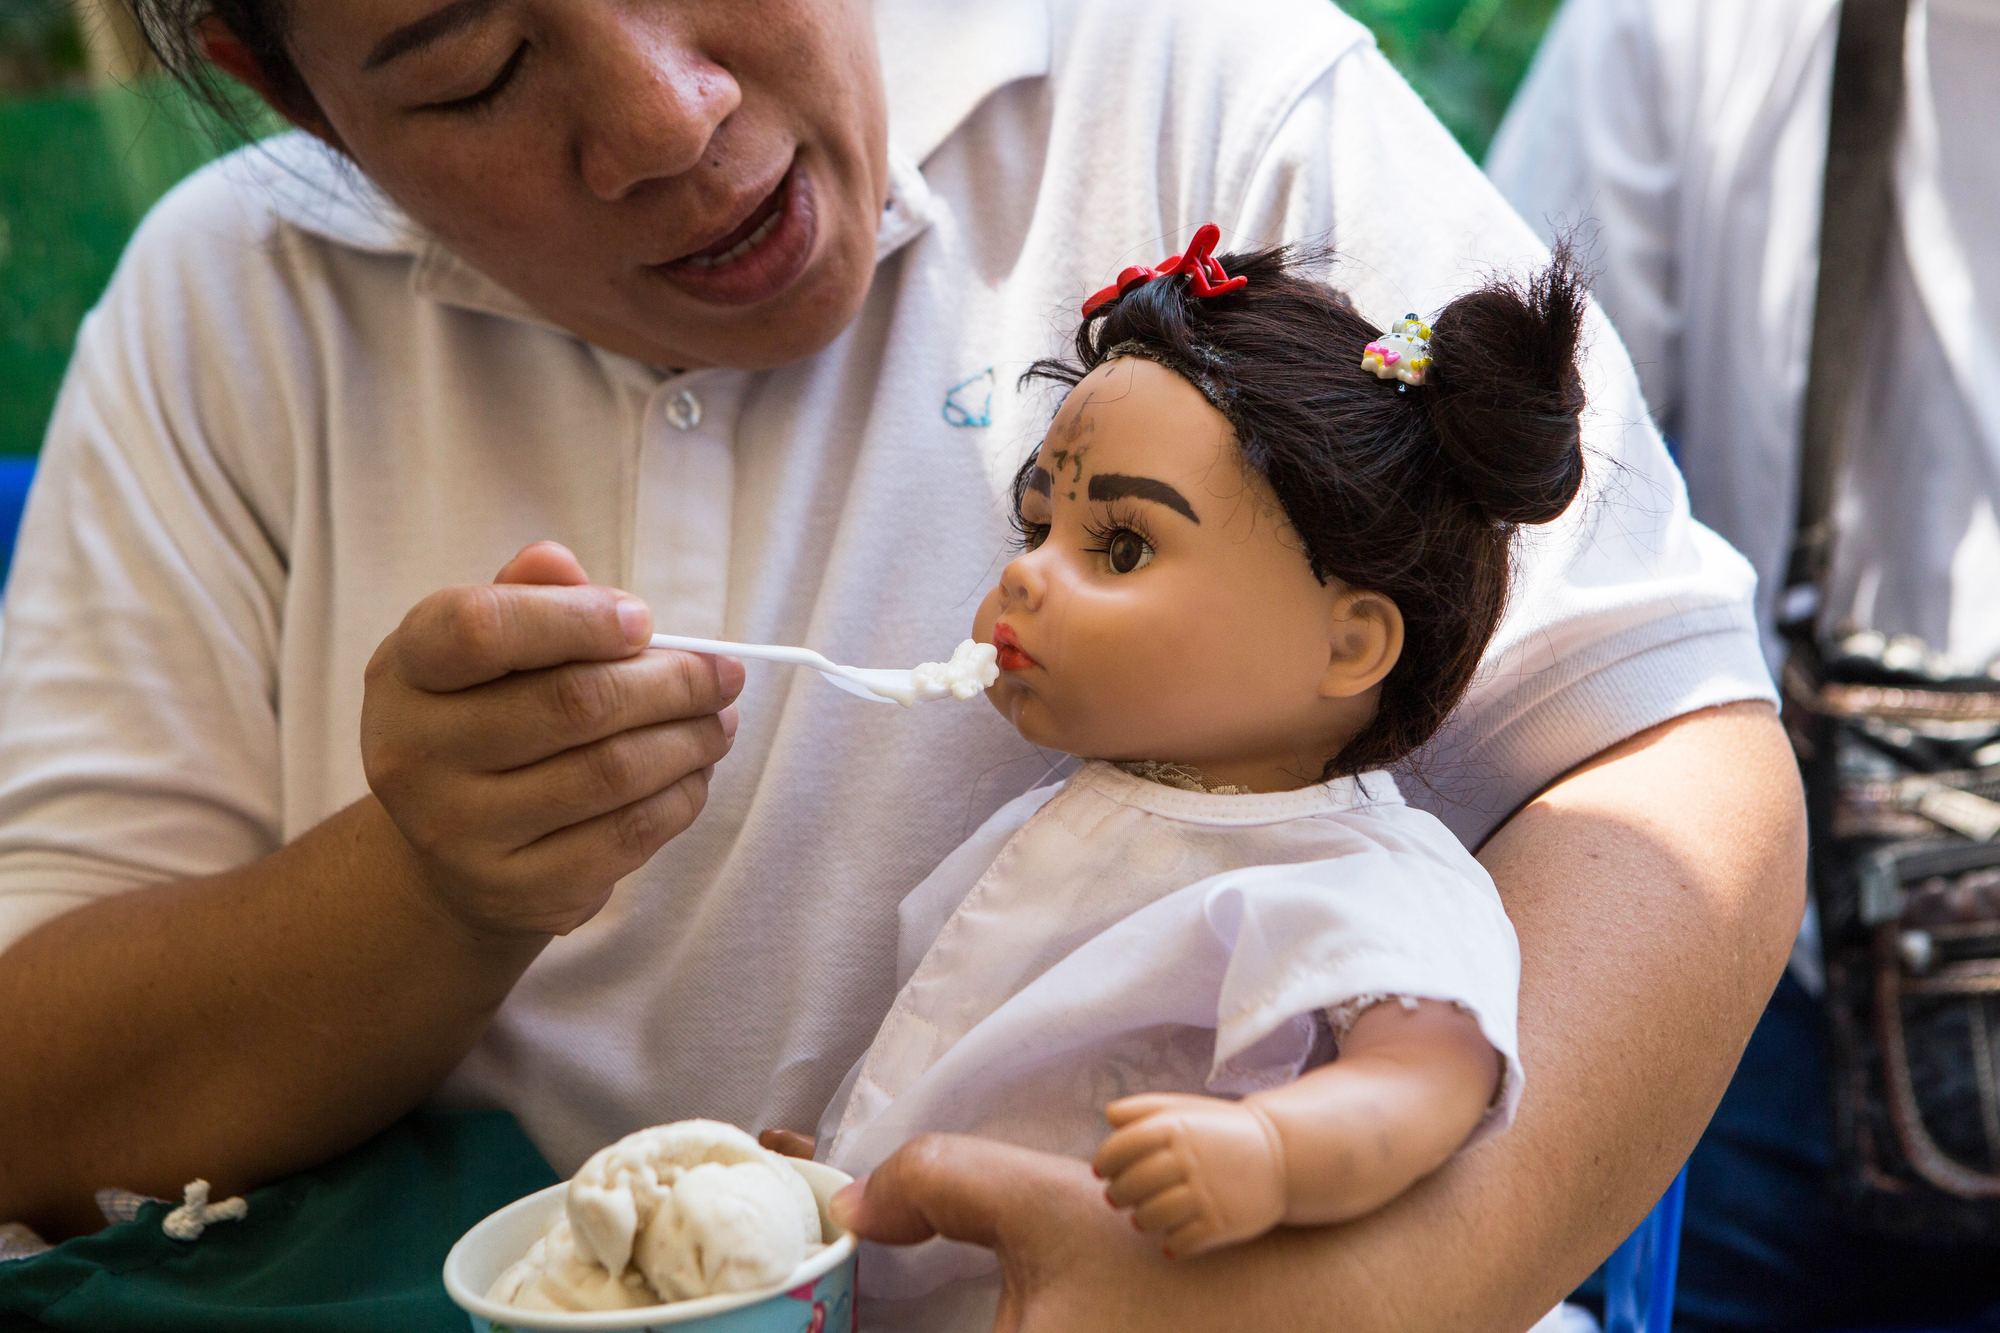 A woman named Pita feeds her Luk Thep doll Natalie coconut ice cream on March 21, 2016.